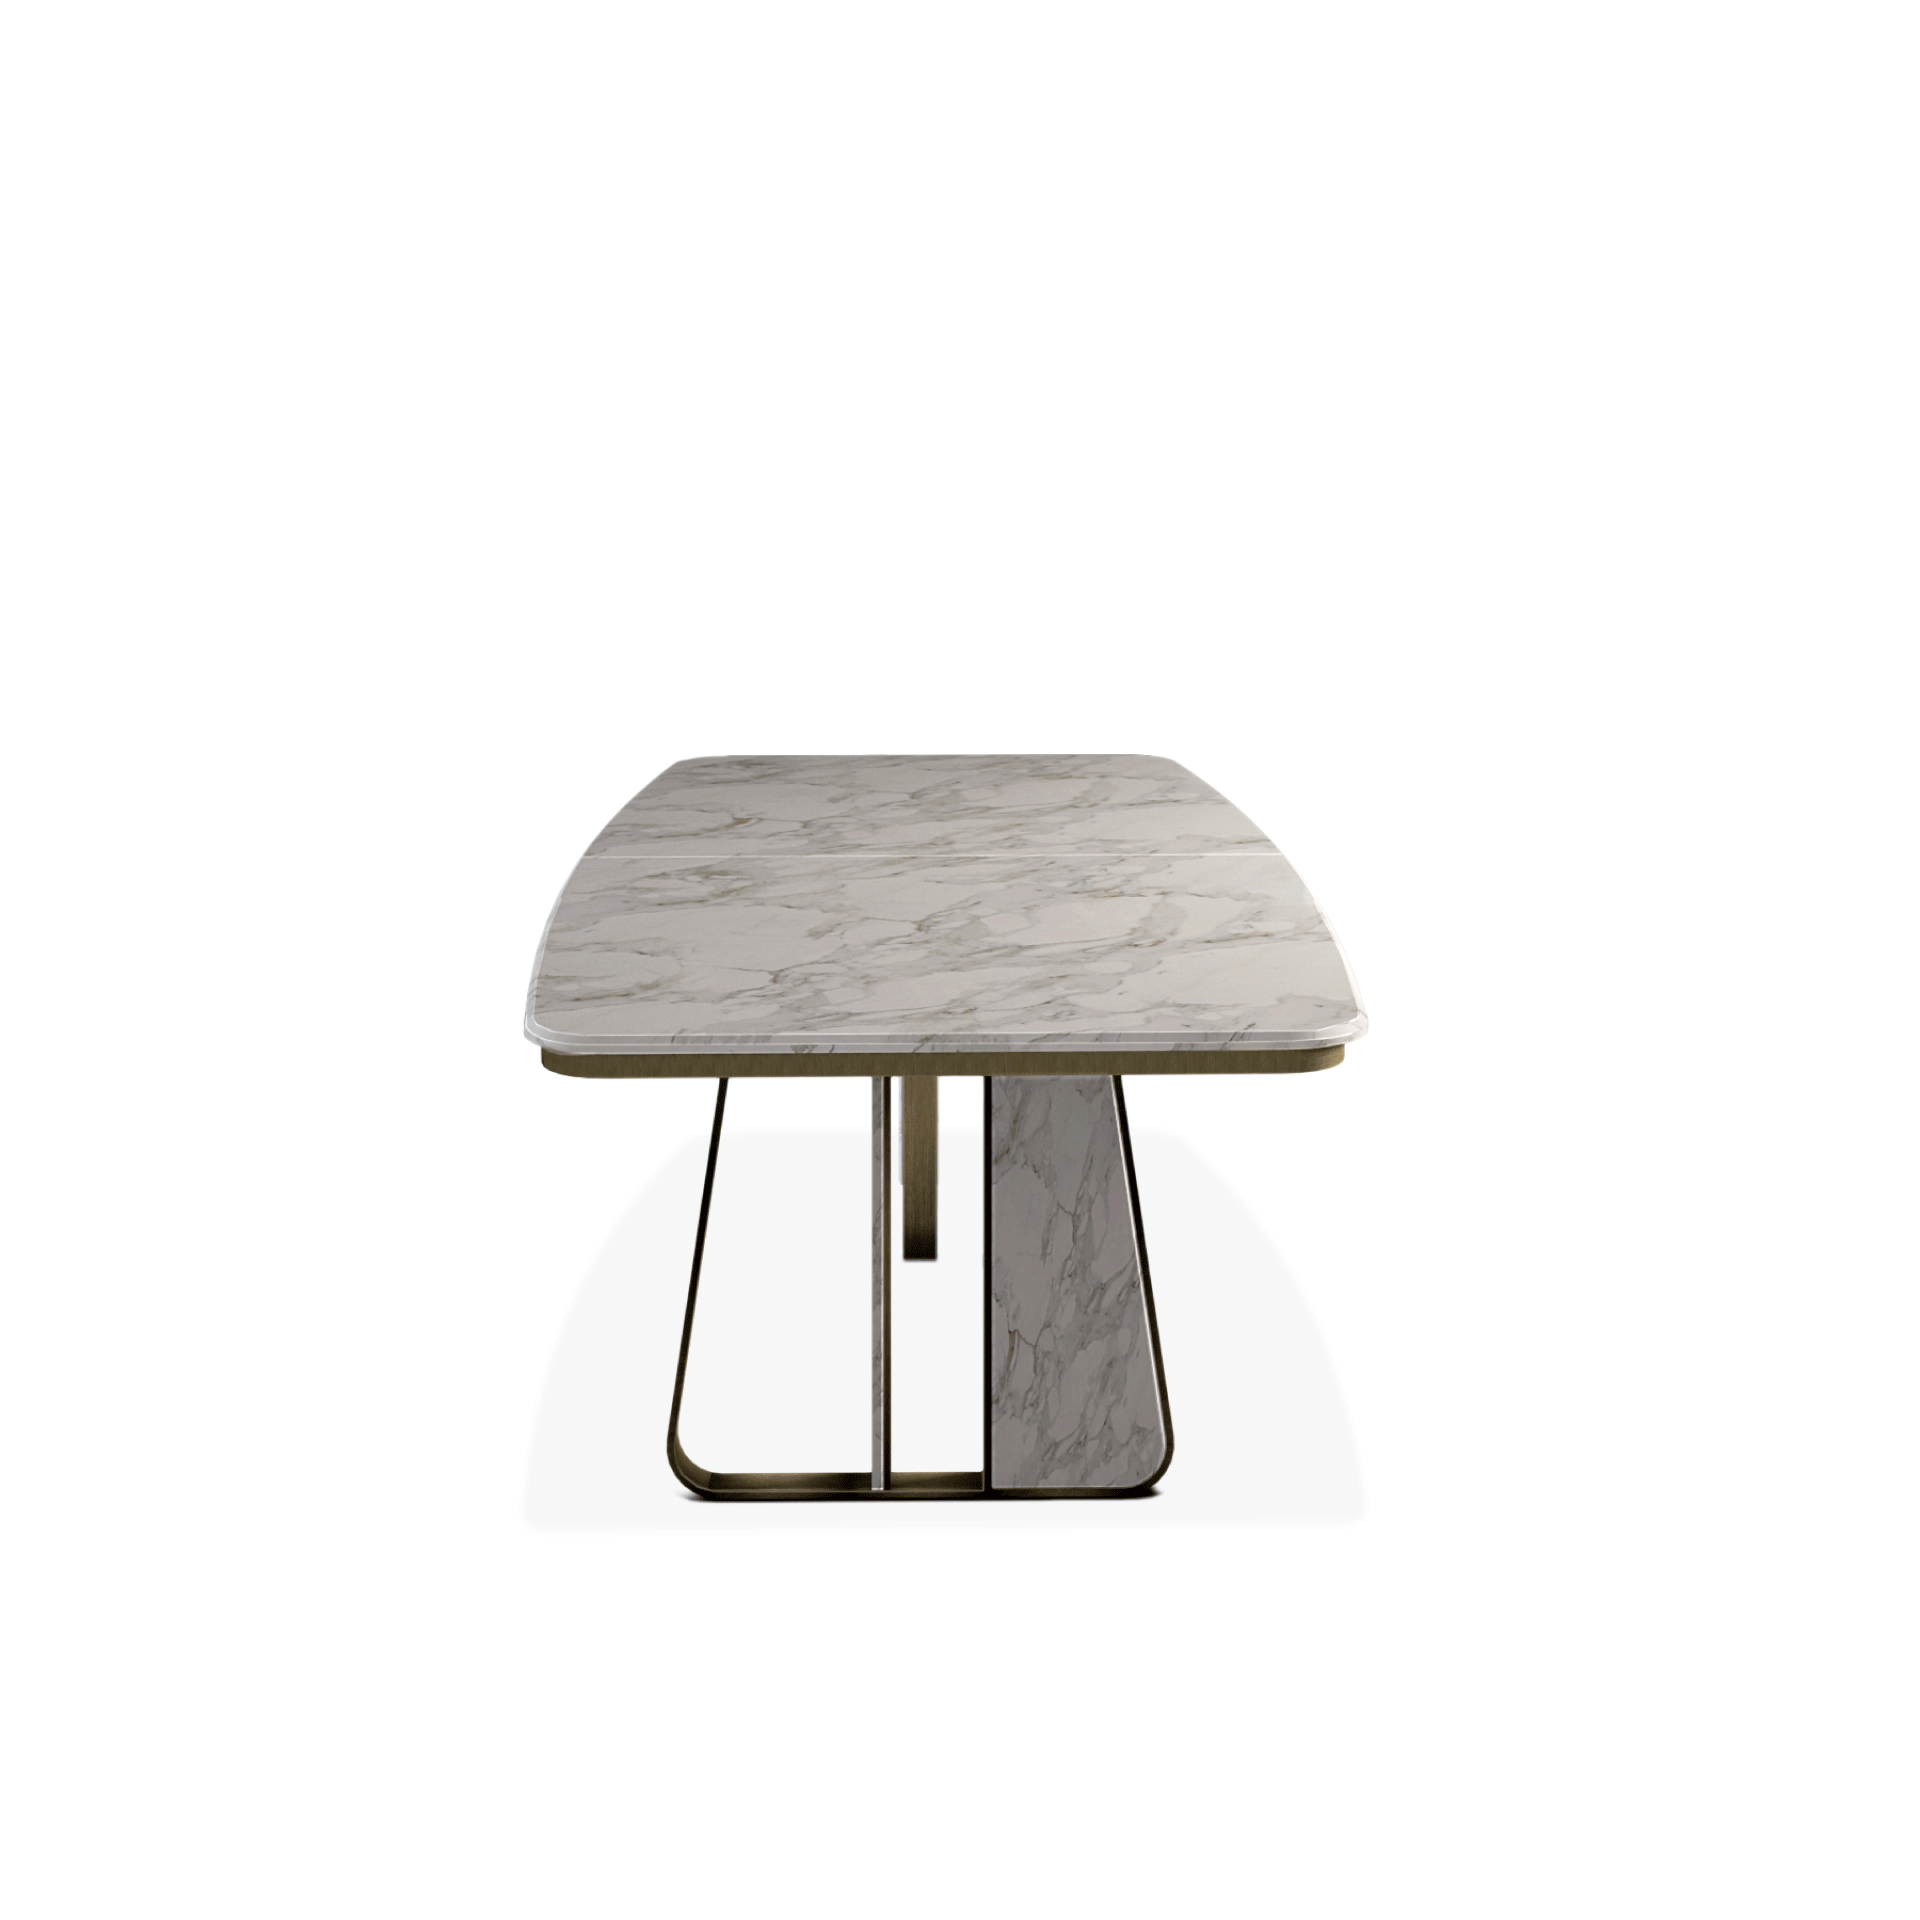 Kenai Dining Table featuring Carrara Marble